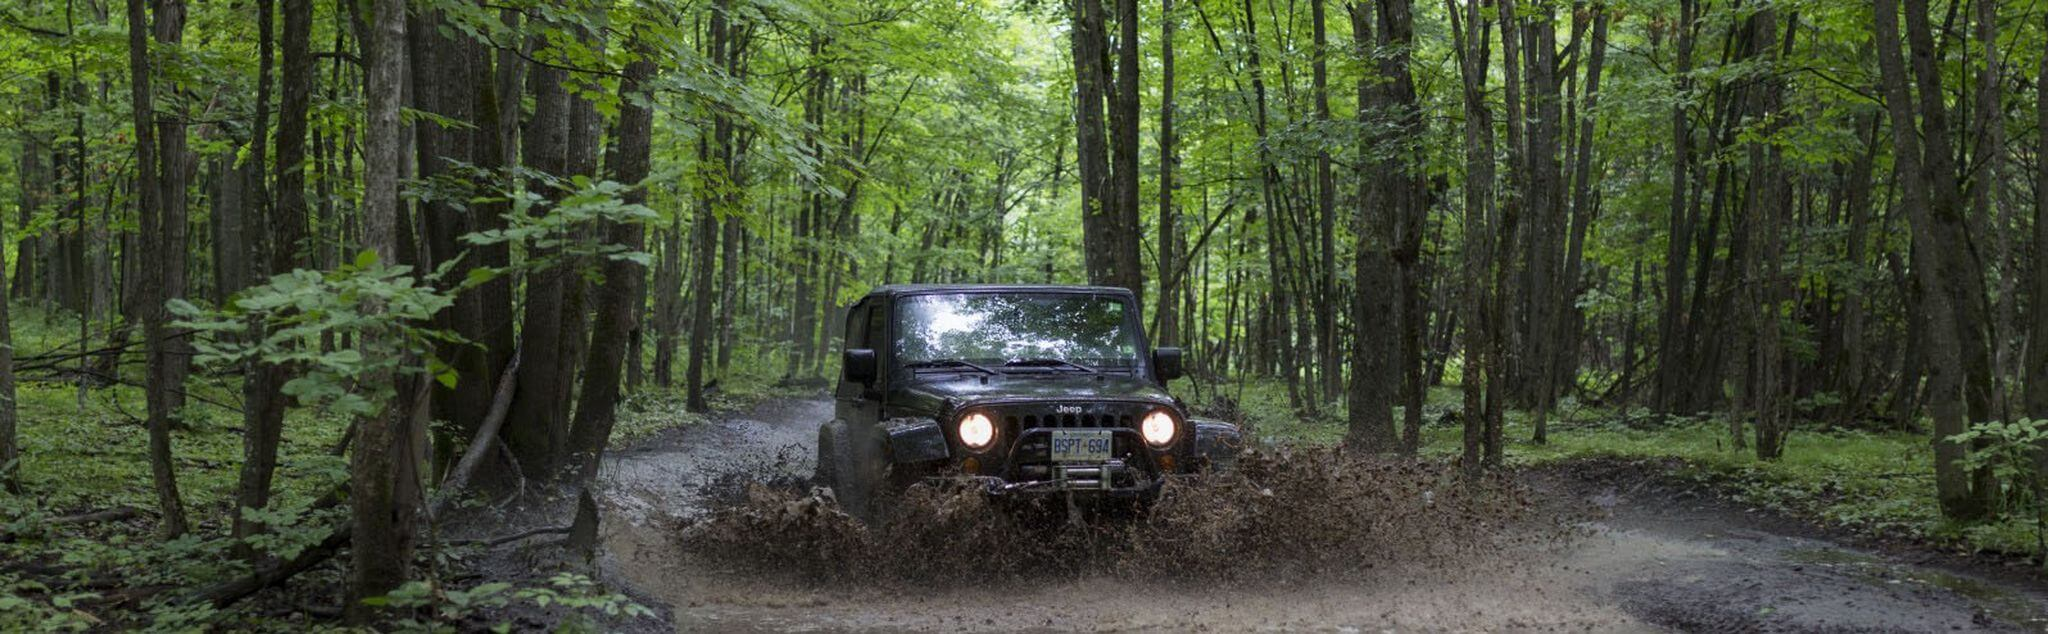 4x4 Tours in Worcestershire